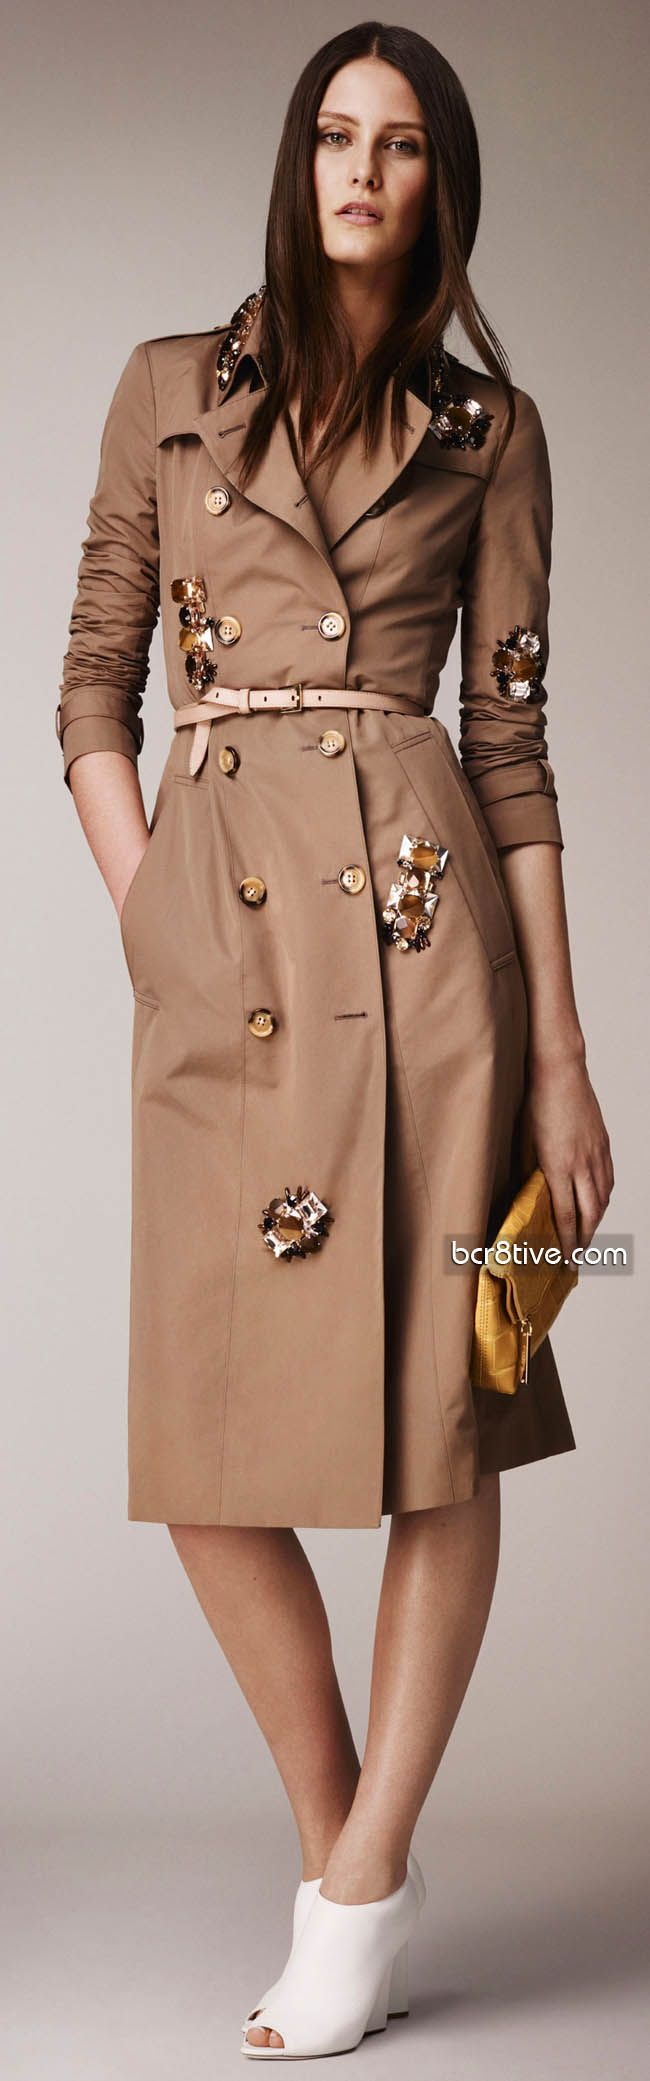 best coat images on pinterest cufflinks fall fashion and fall